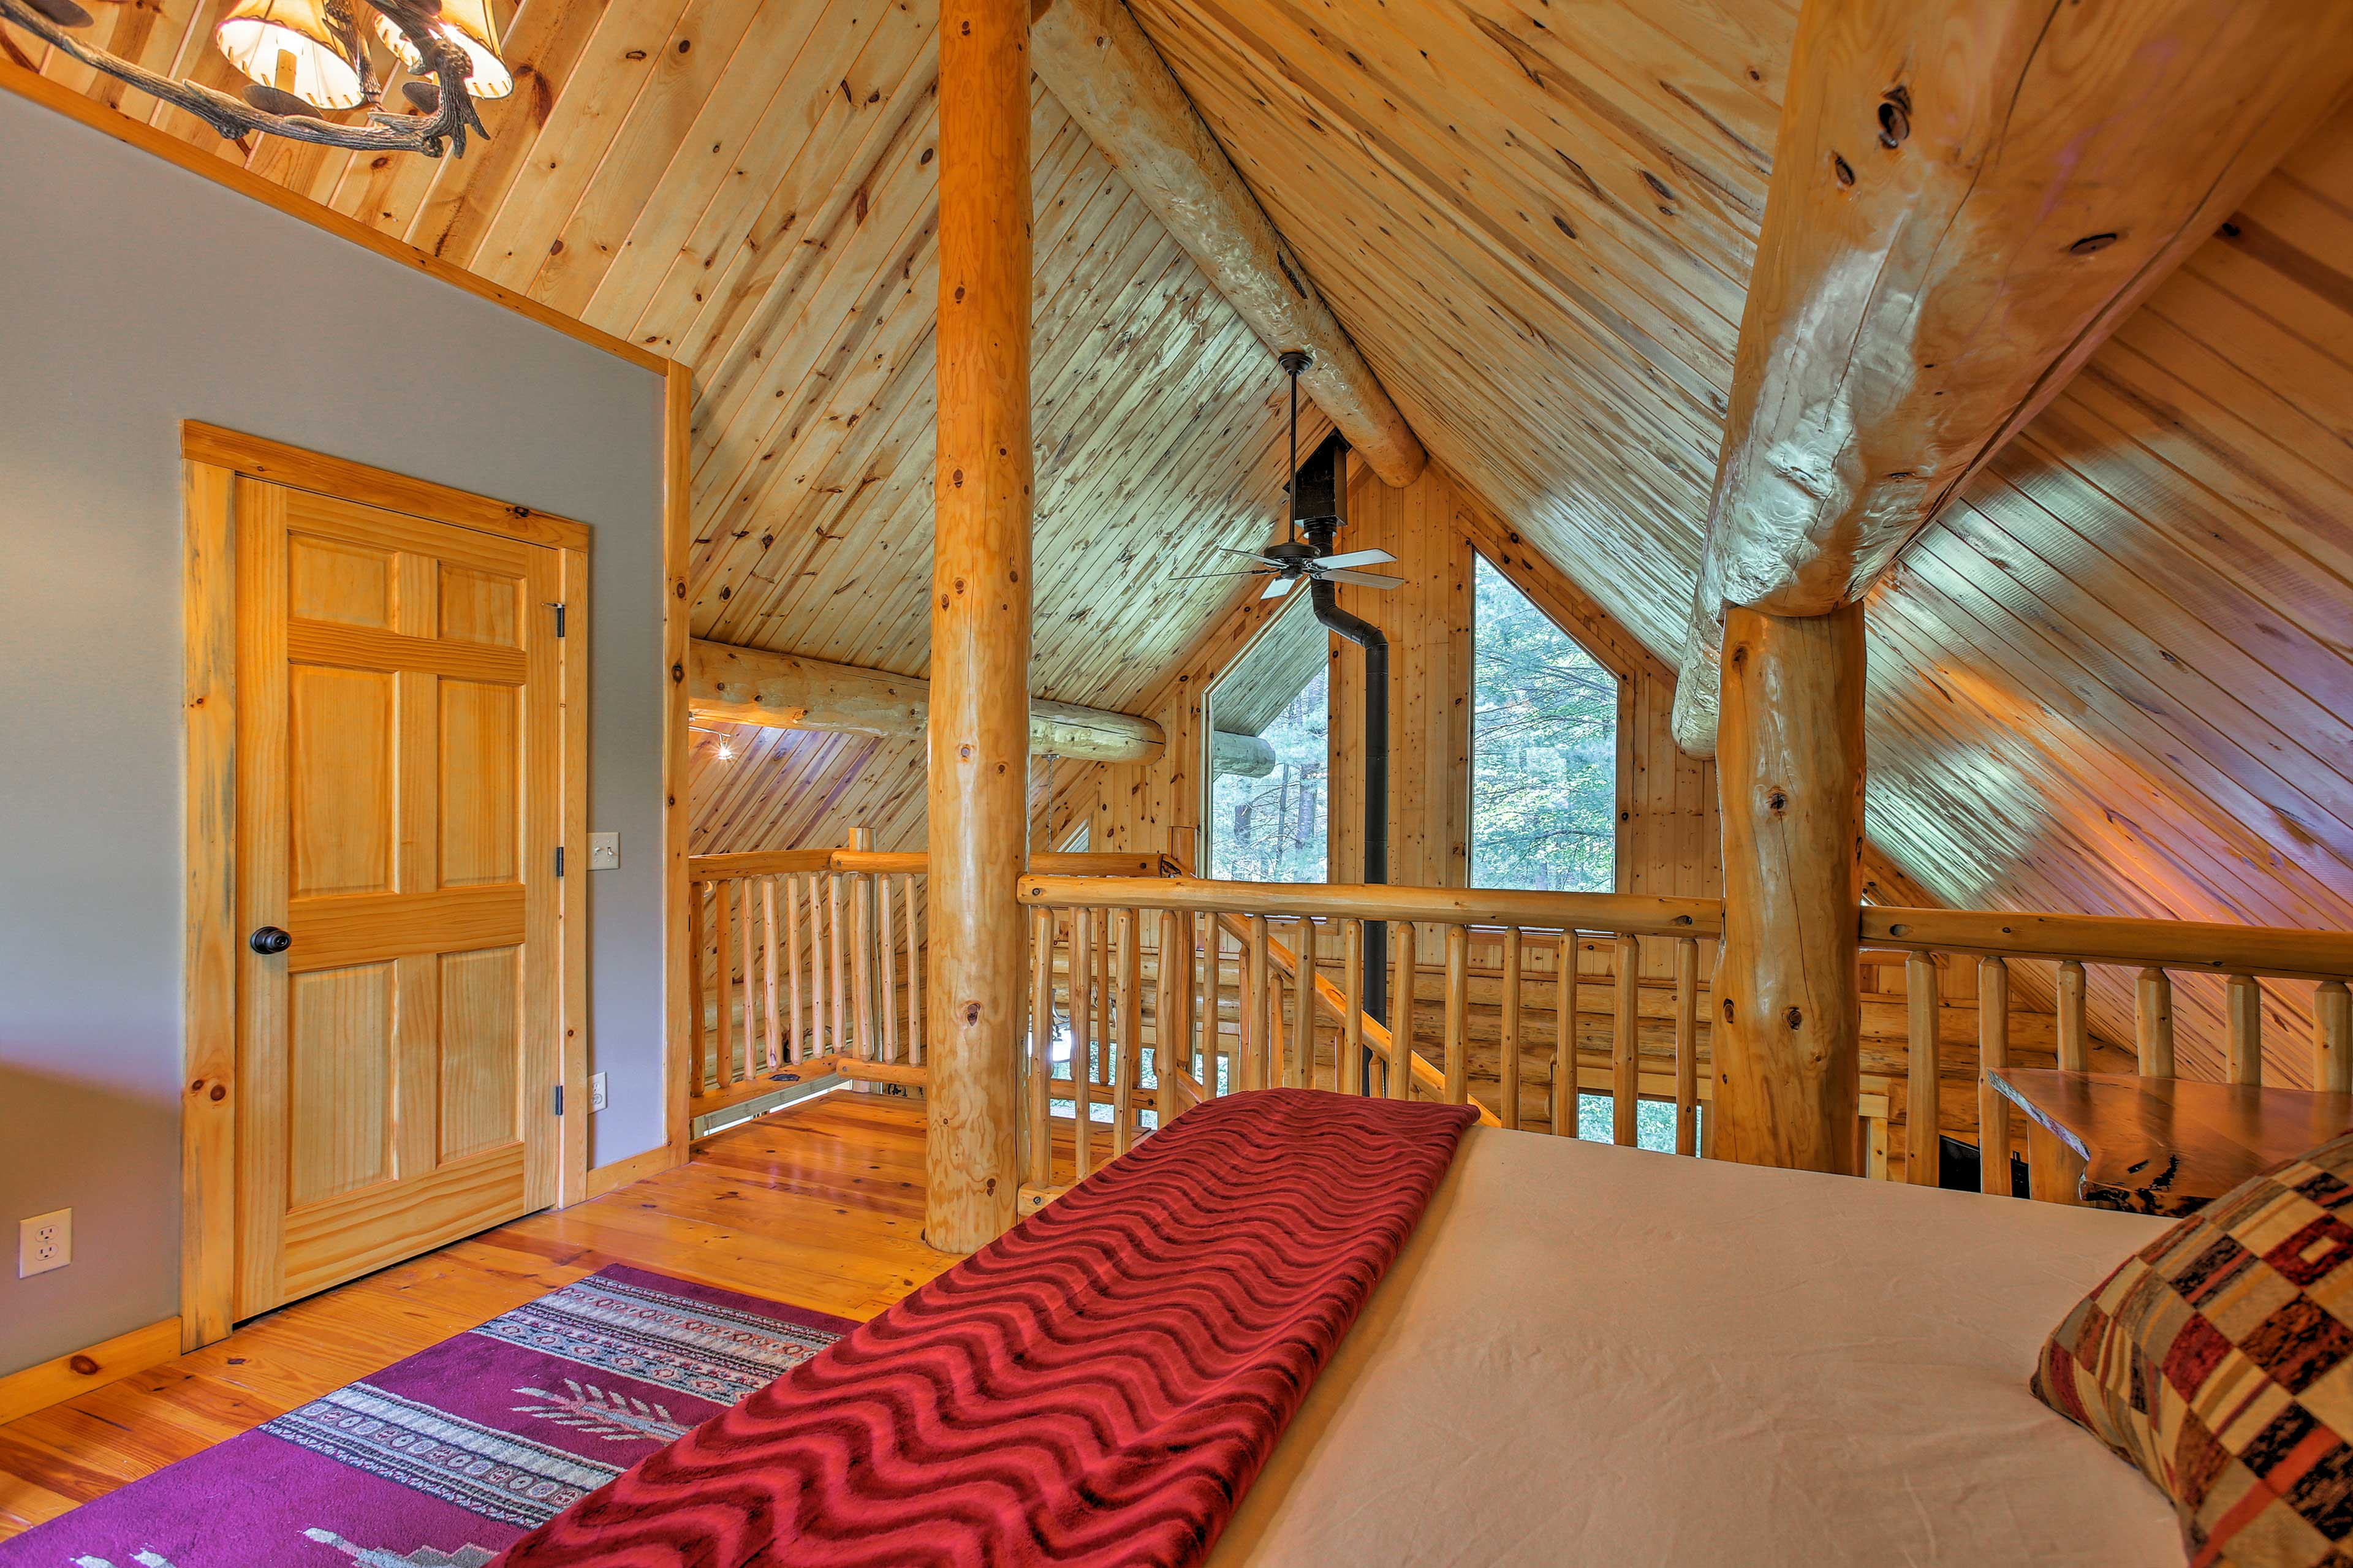 You can admire the whole cabin's interior from this bedroom!